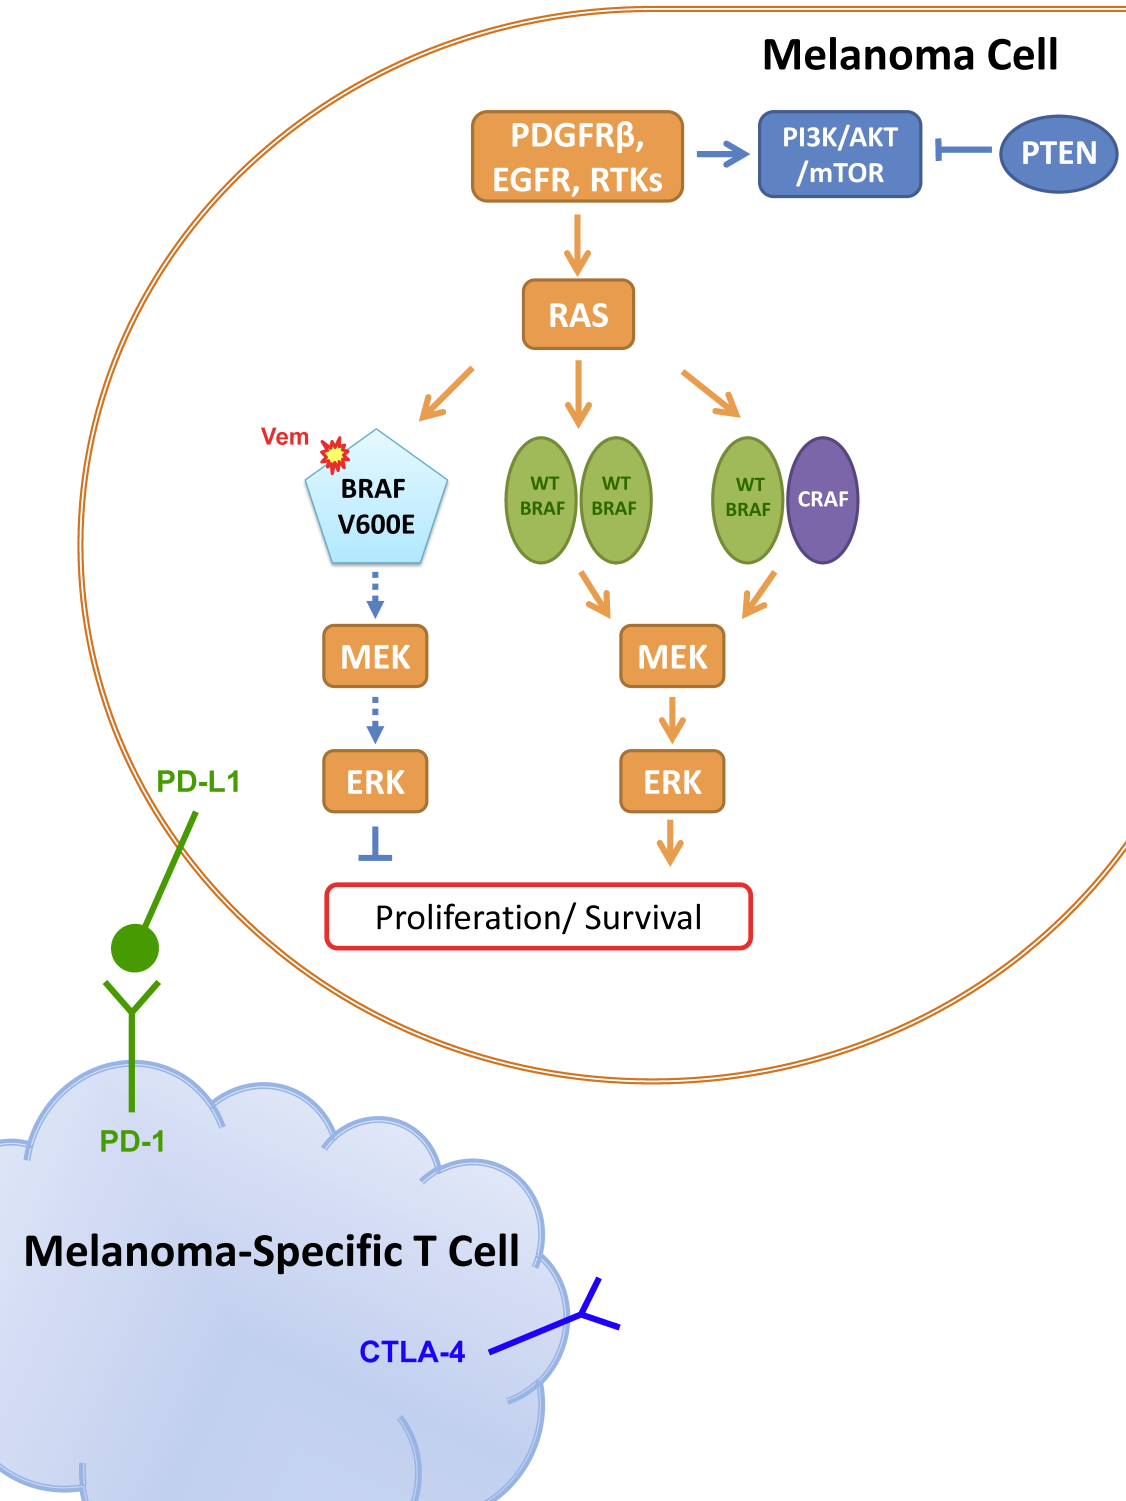 Emerging Drug Combination Approaches In Melanoma Therapy